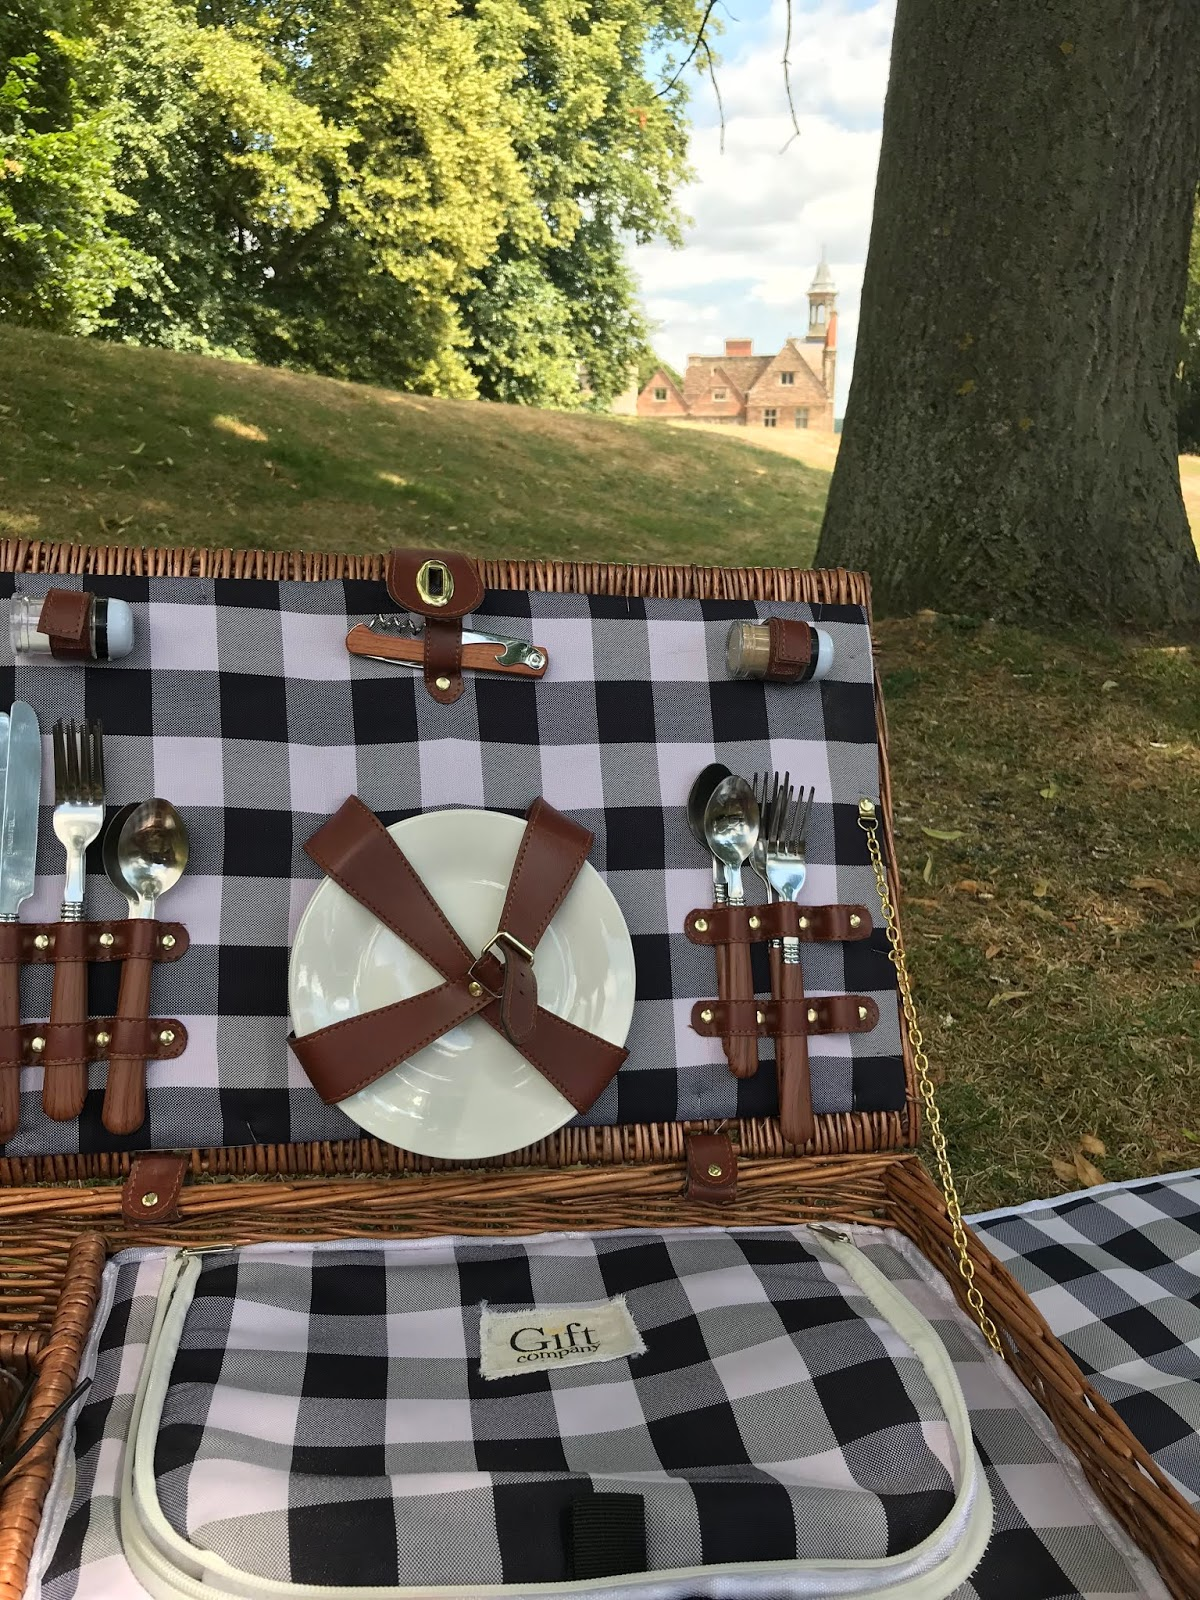 Picnic at Rufford Abbey \ The Gift company picnic basket